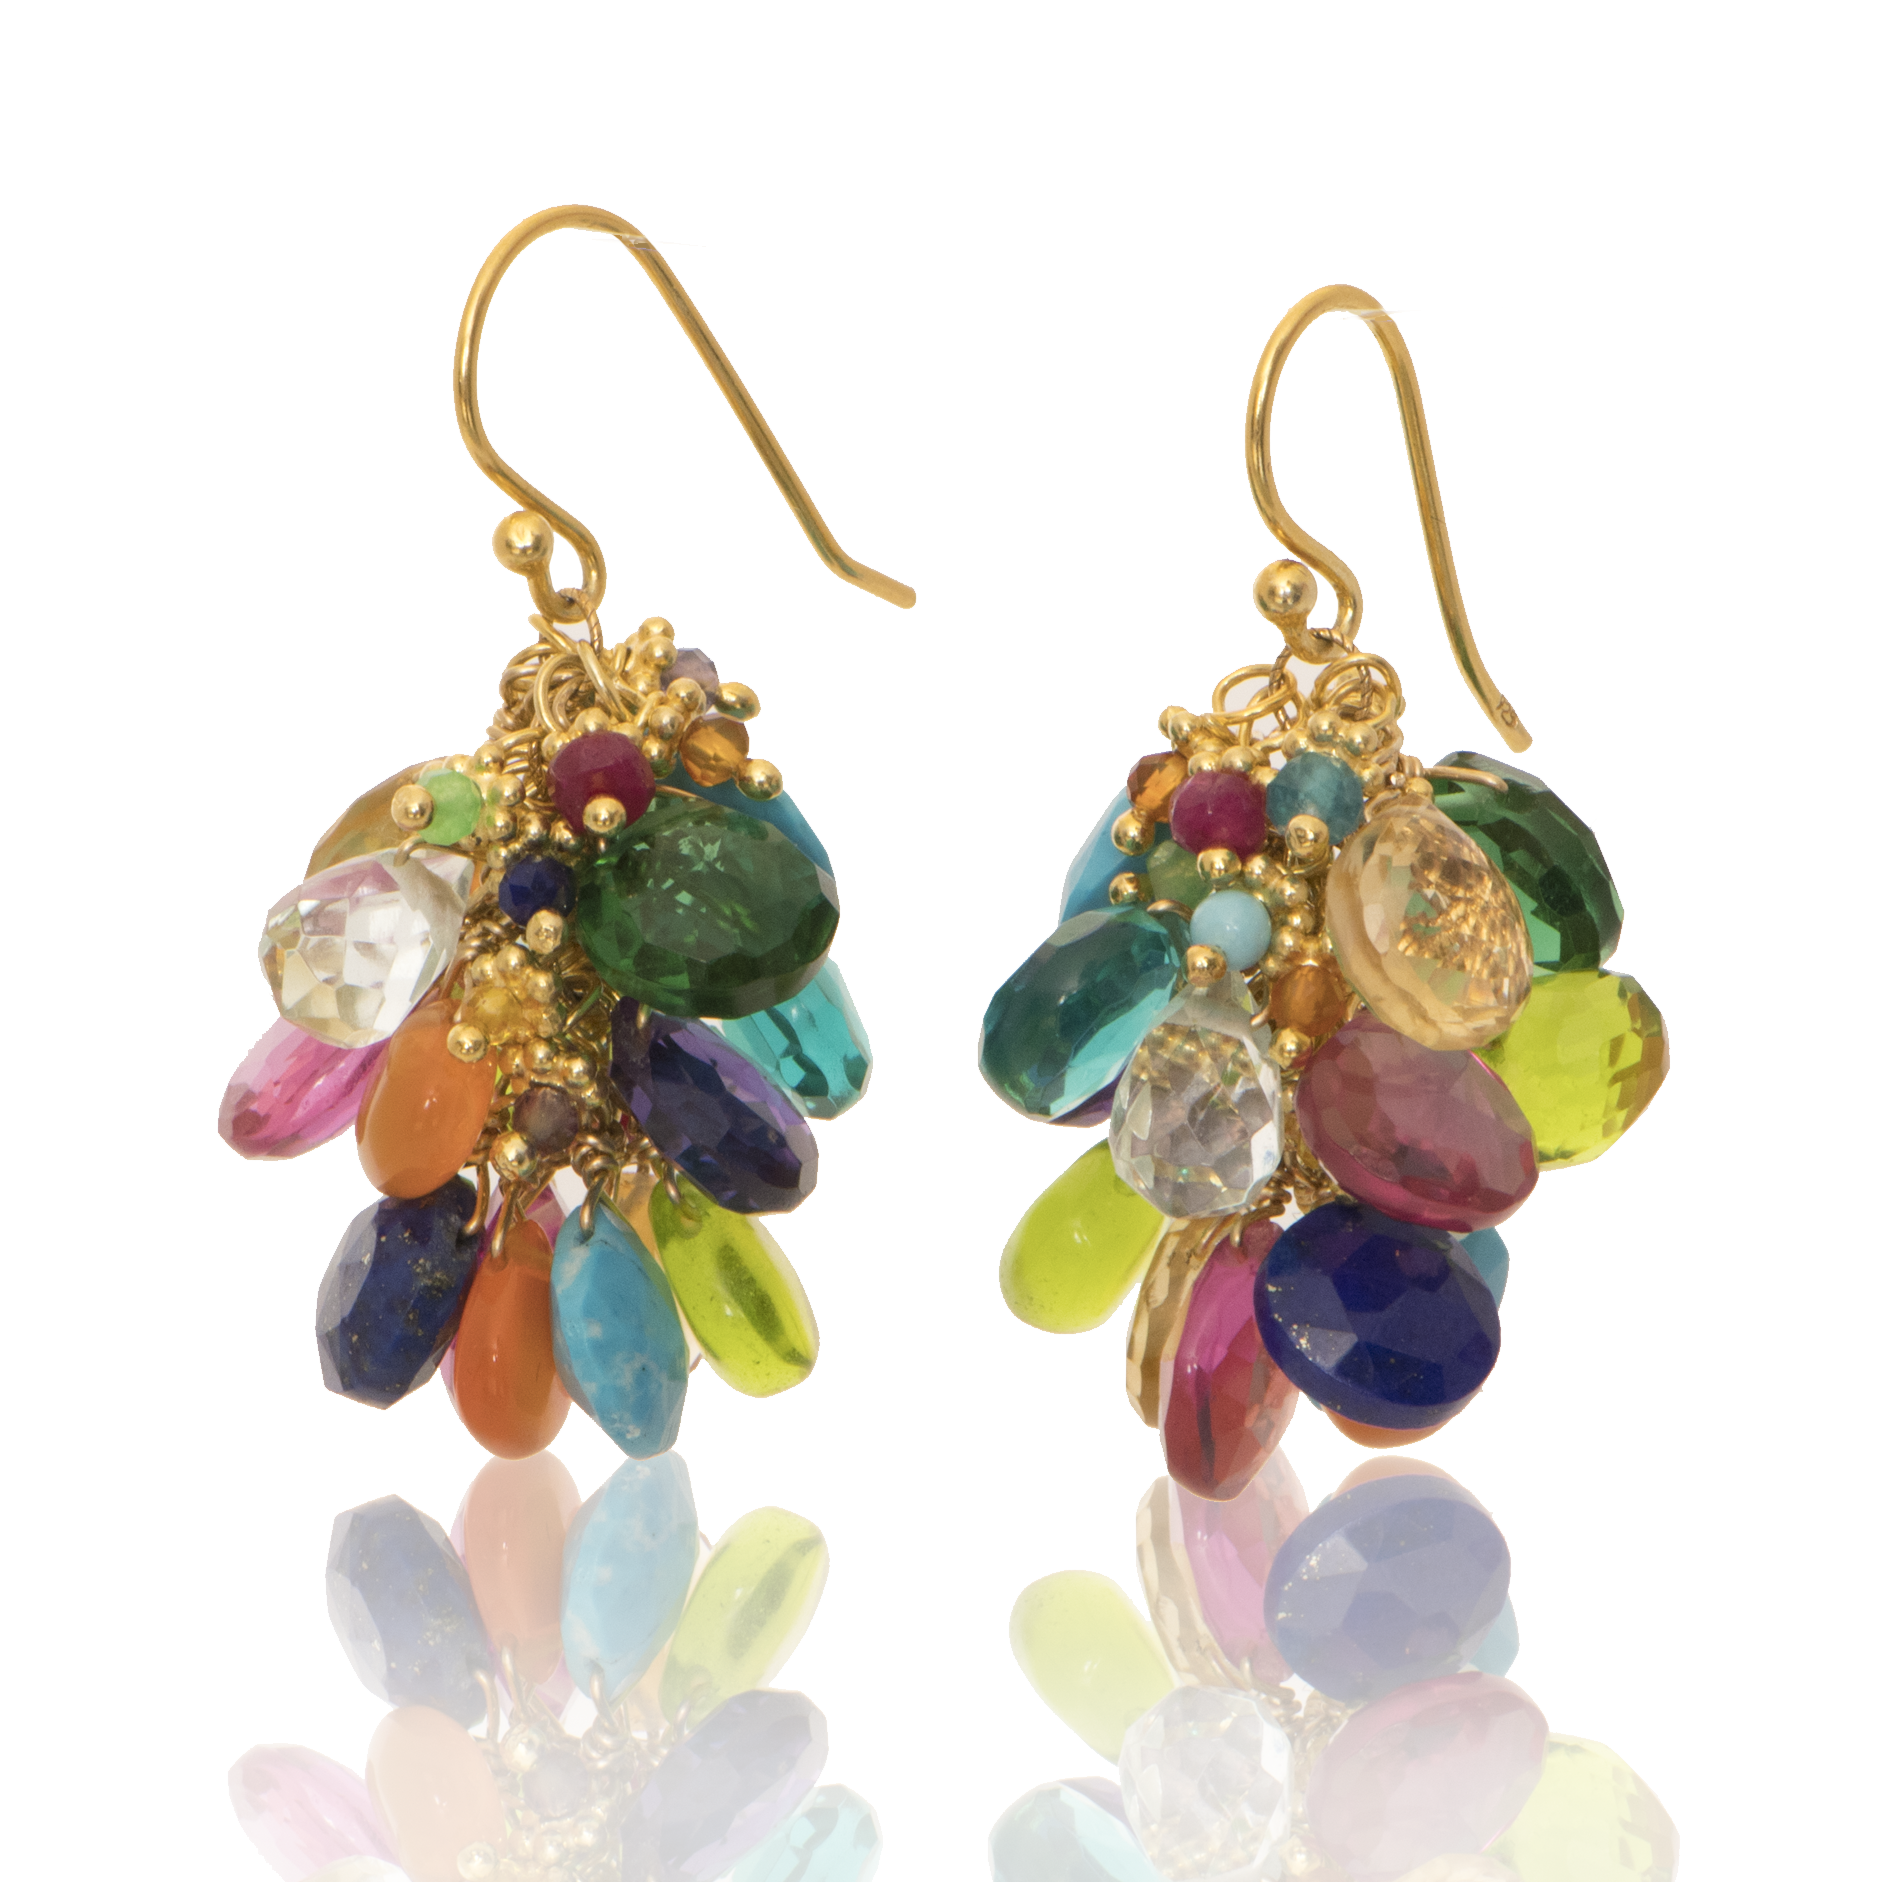 Party In Your Ears-Rainbow (Assortment of multi colored semi precious stones)